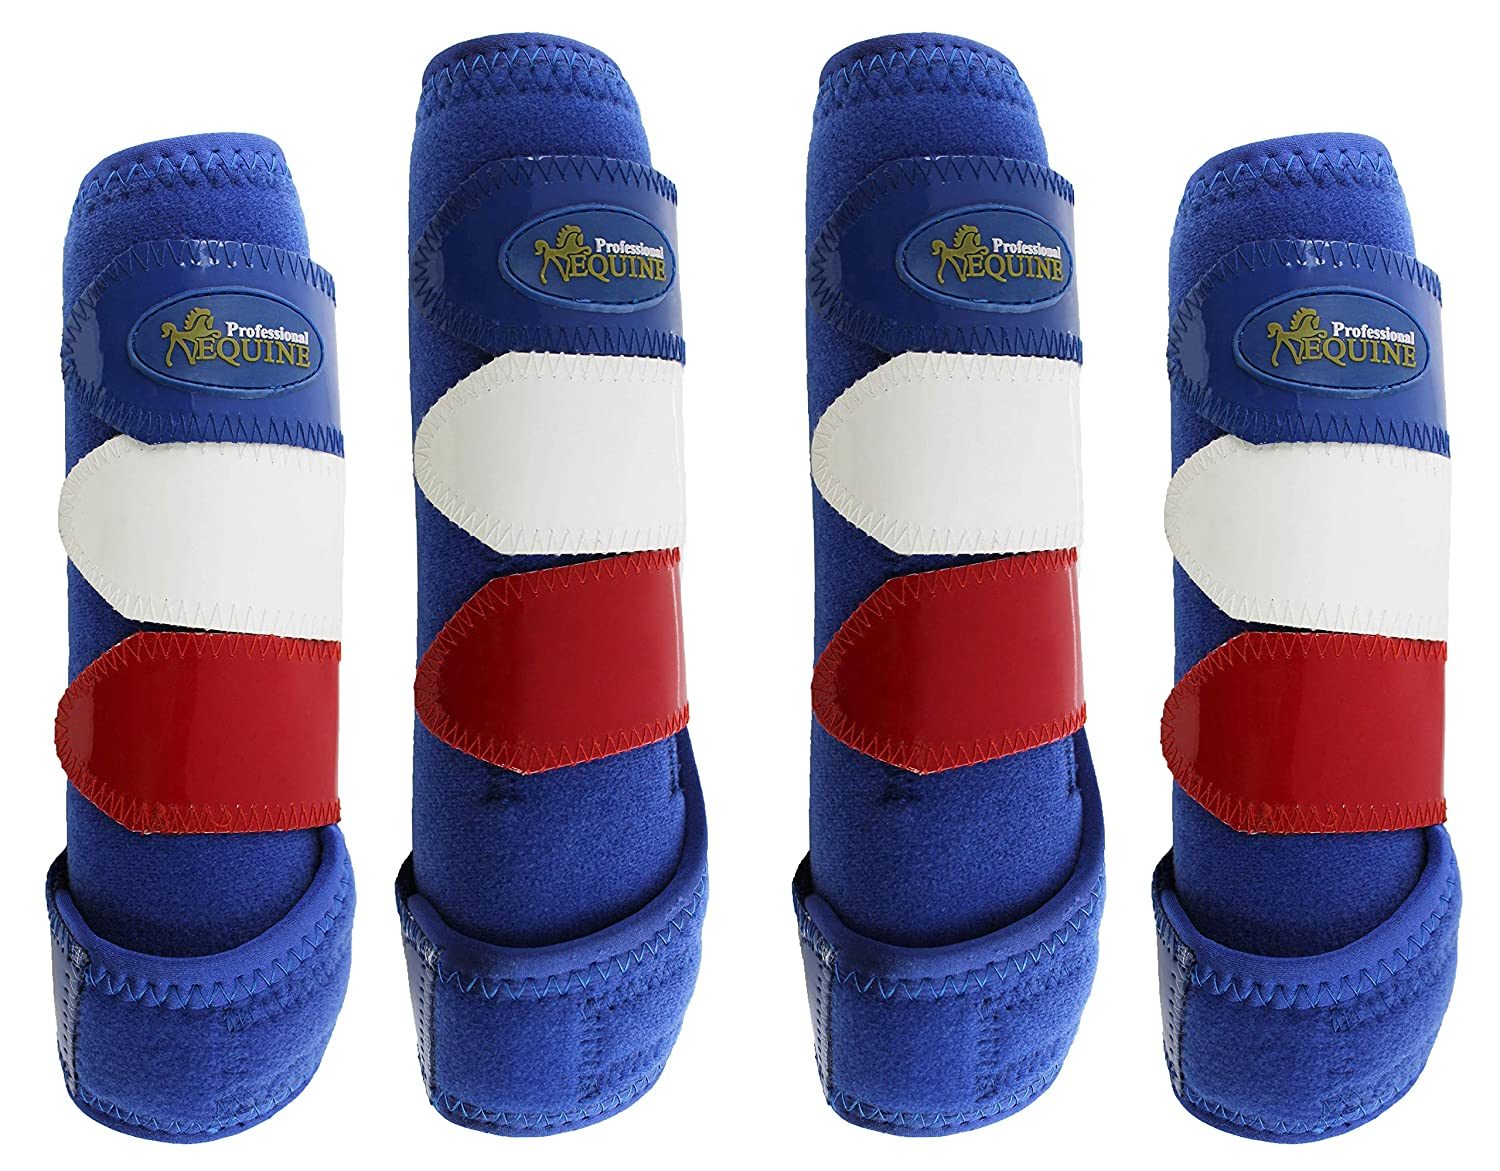 (Medium-Front and Rear Splint, bluee Red White) Horse Medium Professiona Equine Sports Medicine Boots 4142-57